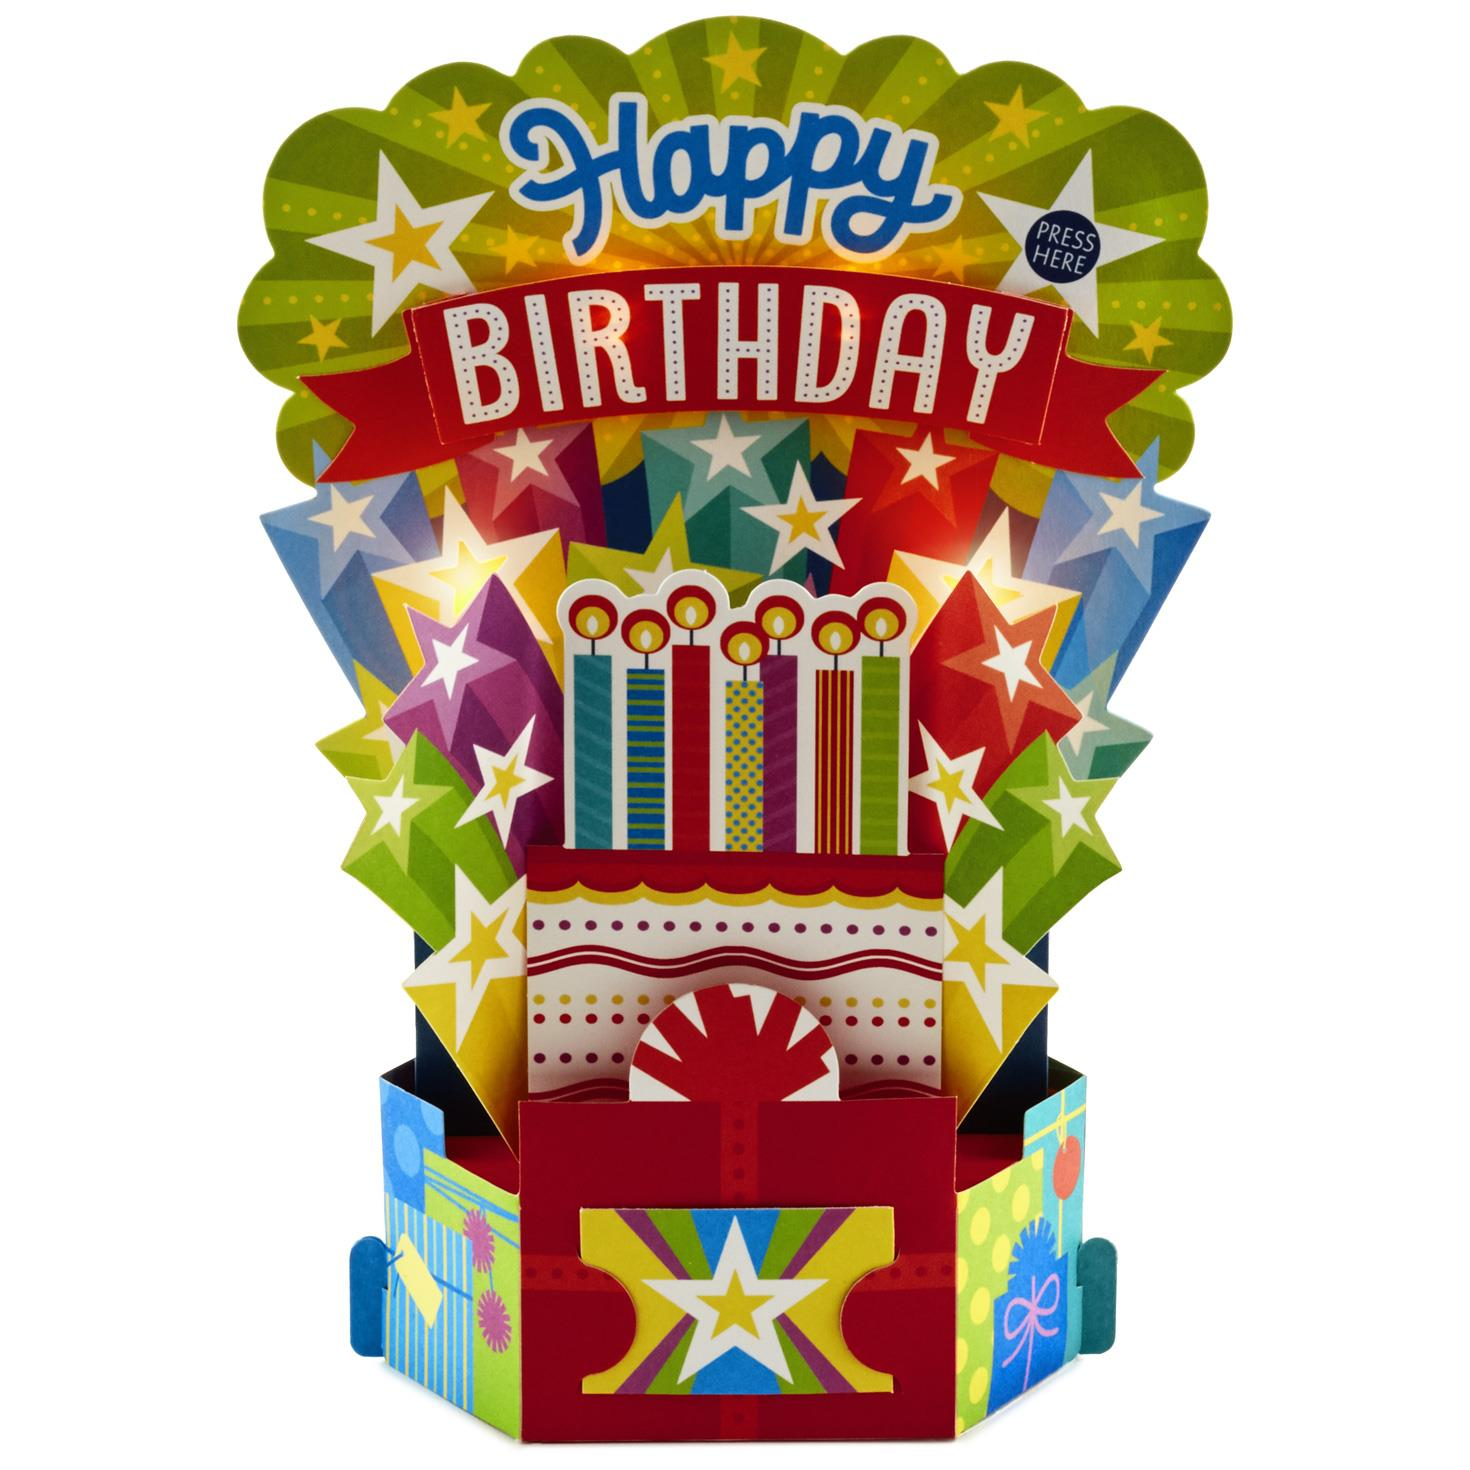 Birthday Cake With Candles Pop Up Musical Birthday Card With Light